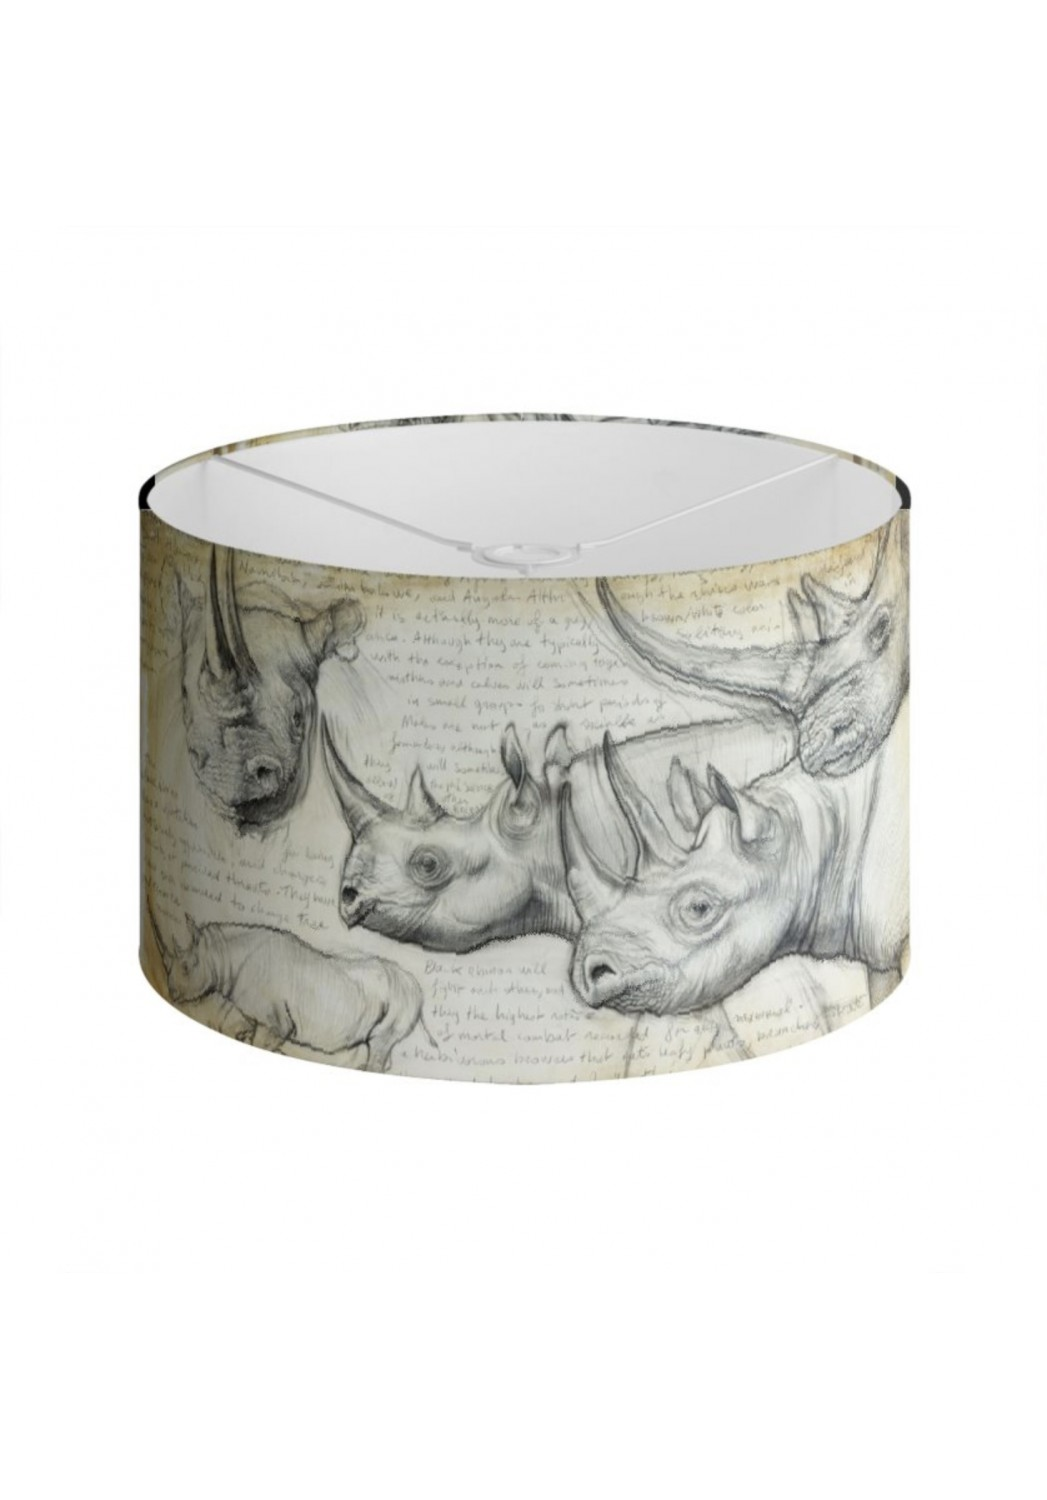 Marcello-art: Decoration accessoiries Lampshade 176 Black rhino